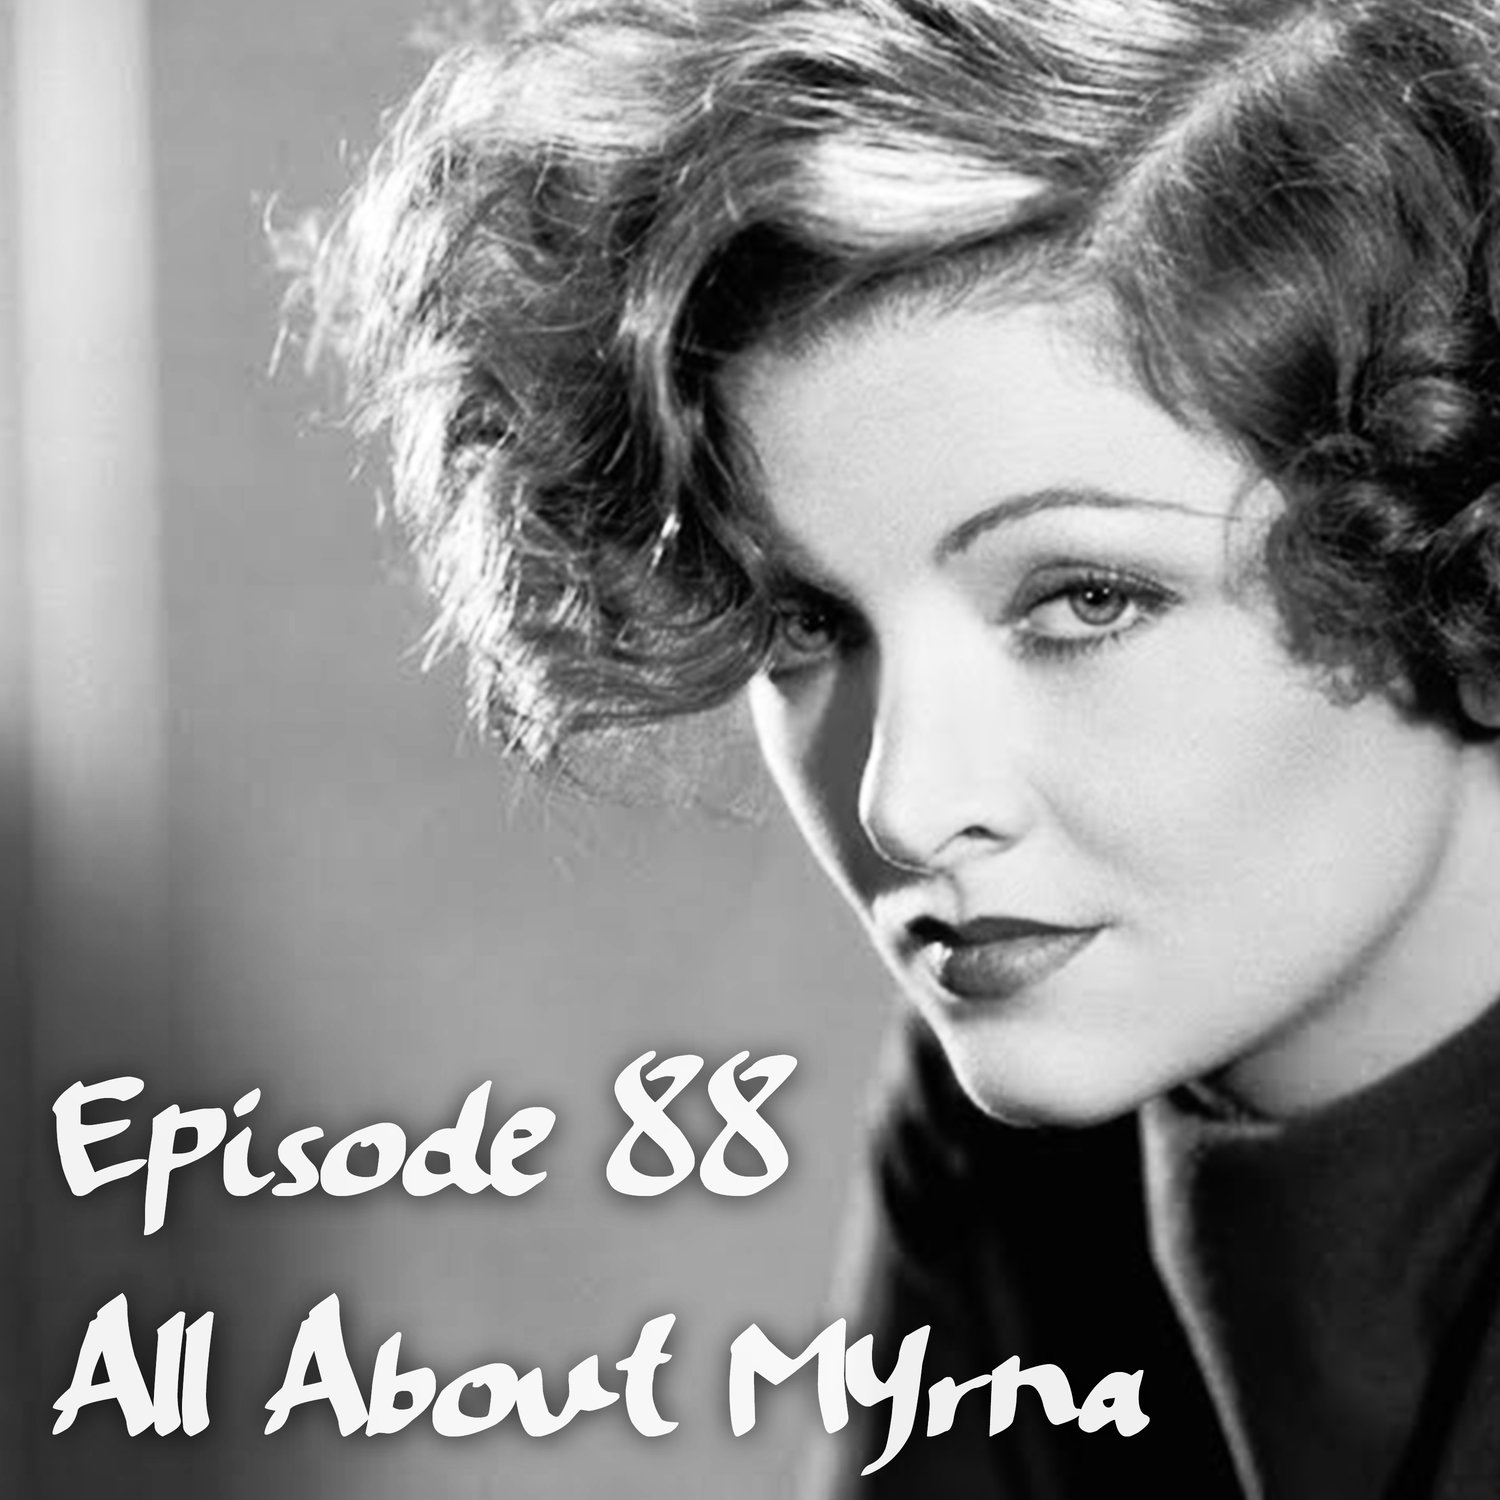 Episode 88: All About Myrna